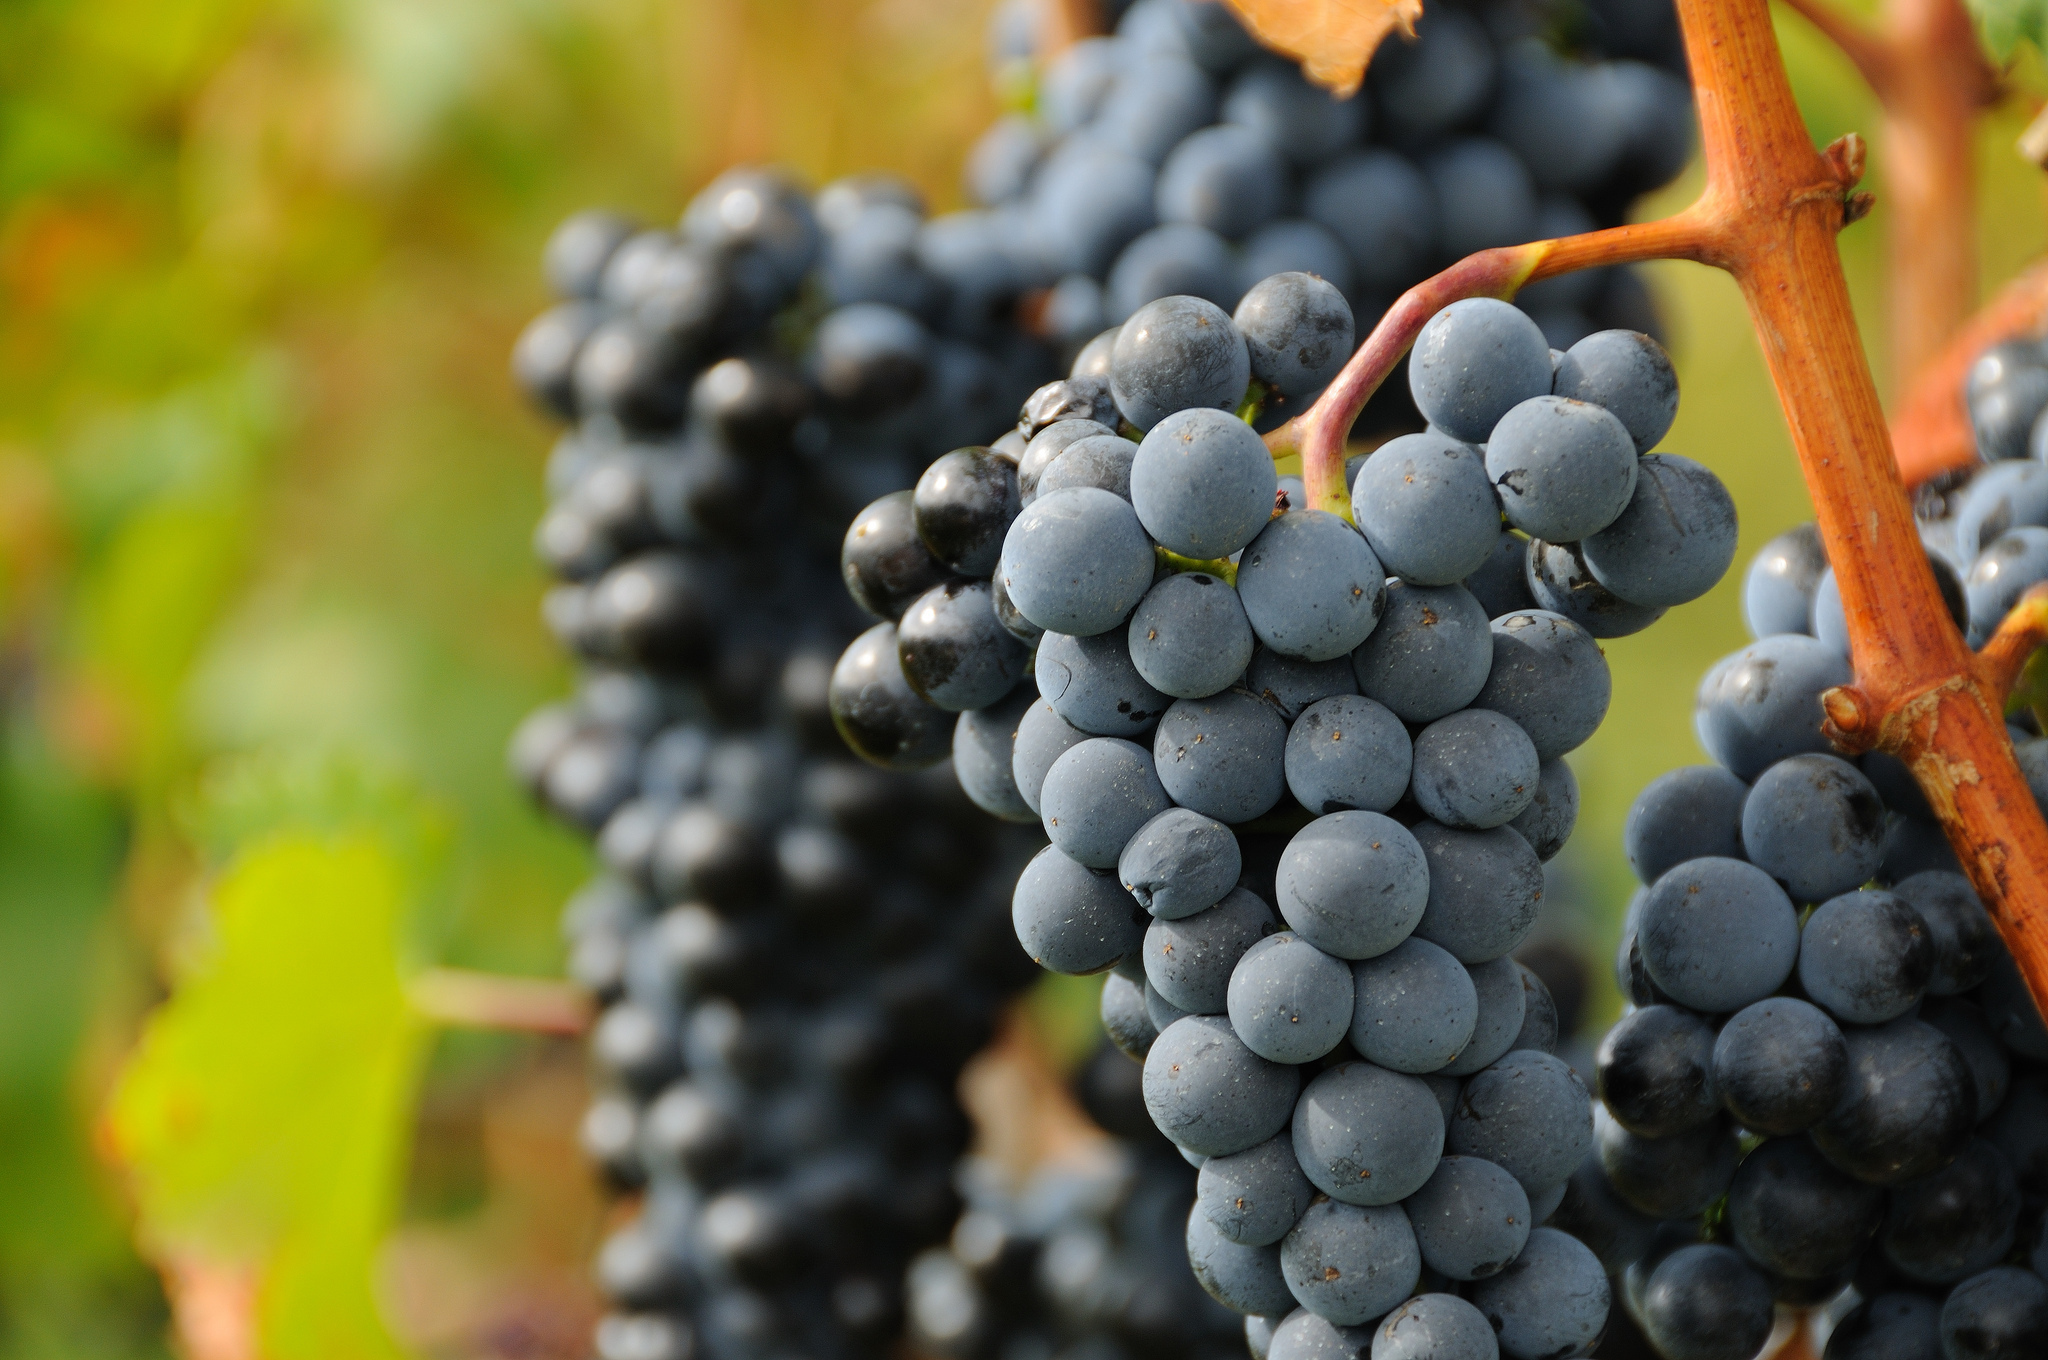 grapes wine hd wallpapers - photo #17